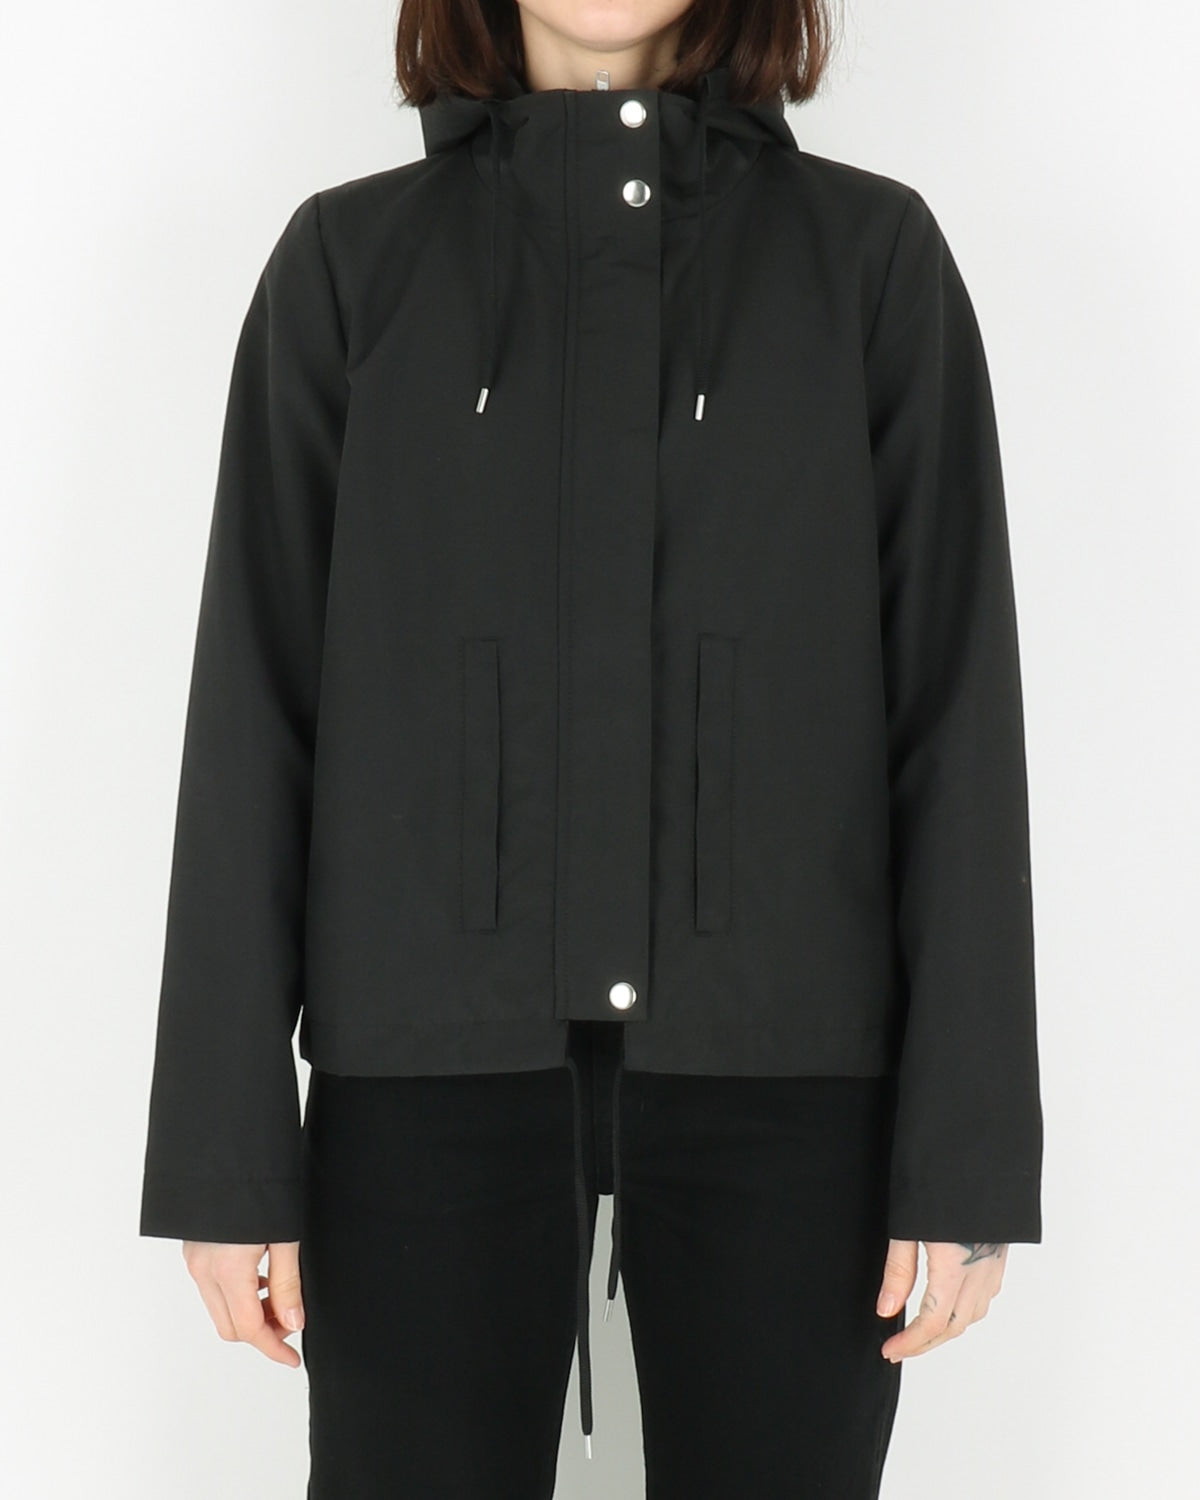 selfhood_jacket light 77082_black_view_2_4